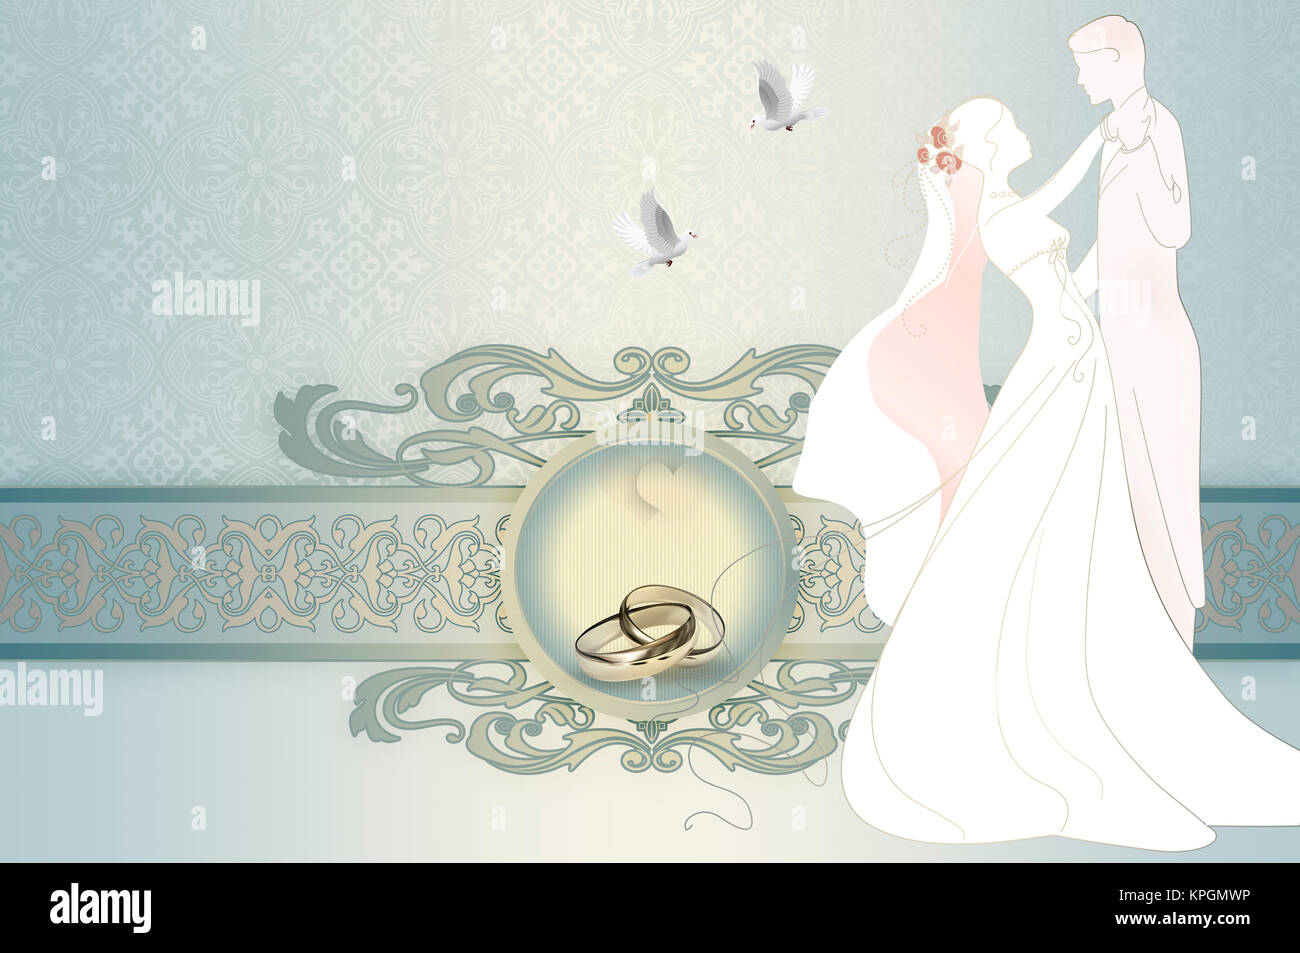 decorative and elegant wedding background with decorative border and stock photo alamy https www alamy com stock image decorative and elegant wedding background with decorative border and 168783378 html